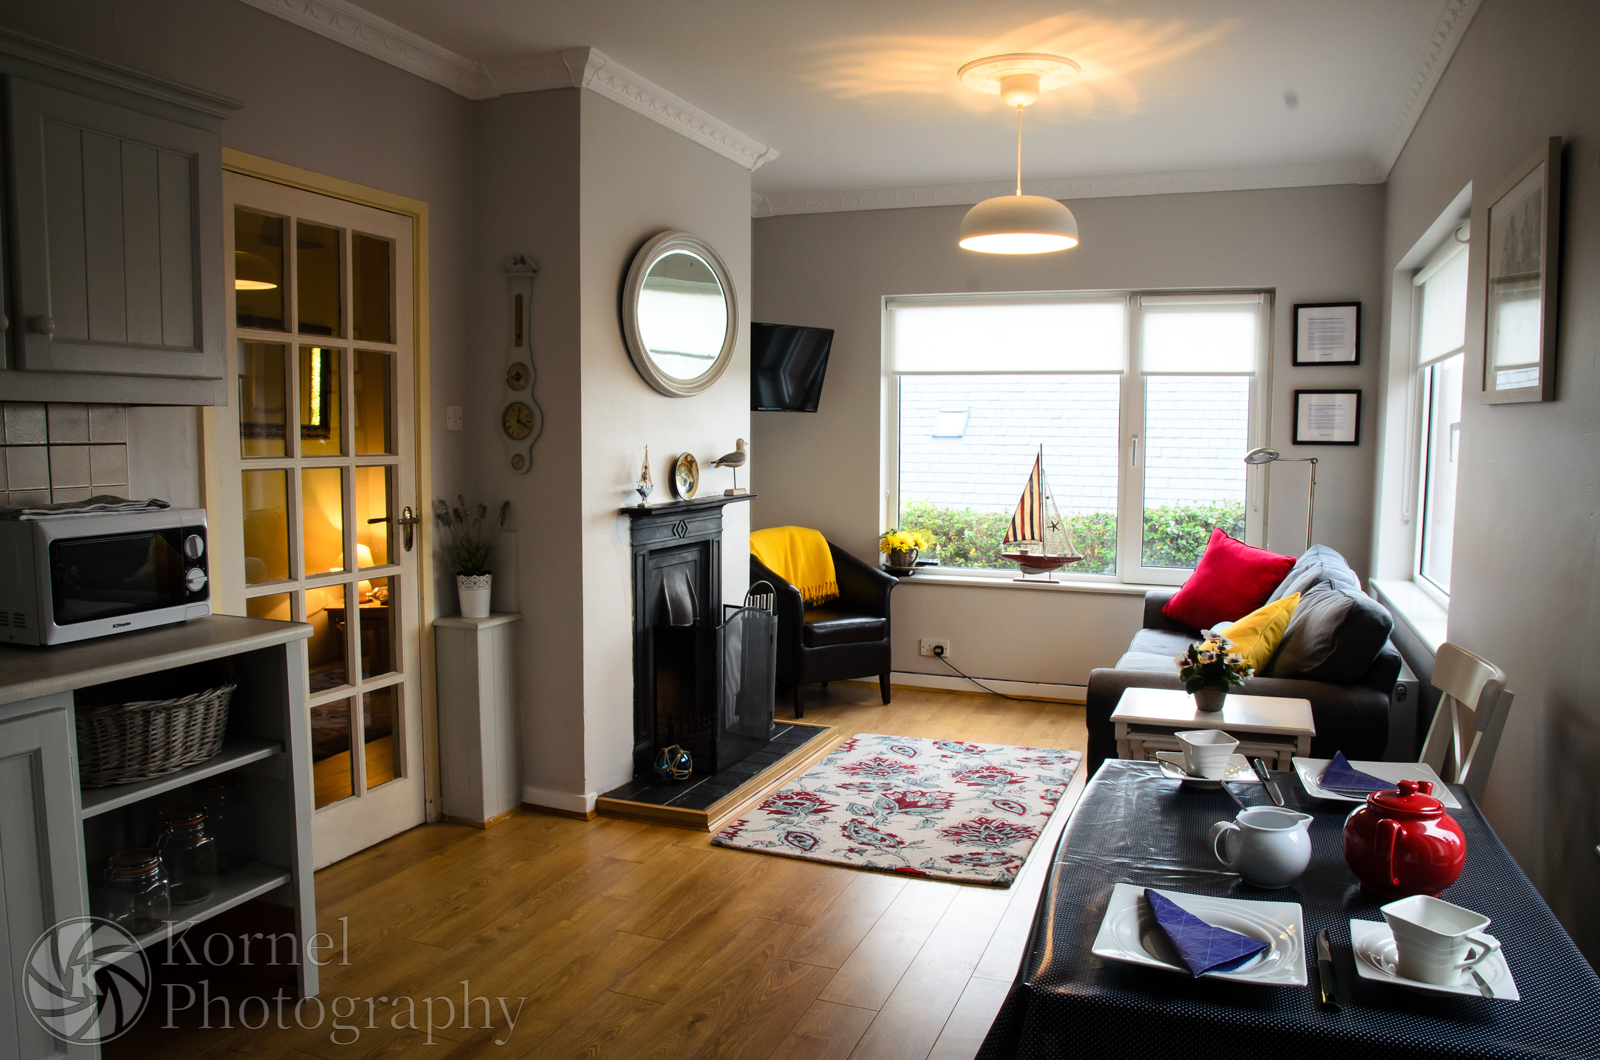 Property photos by Kornel Photography